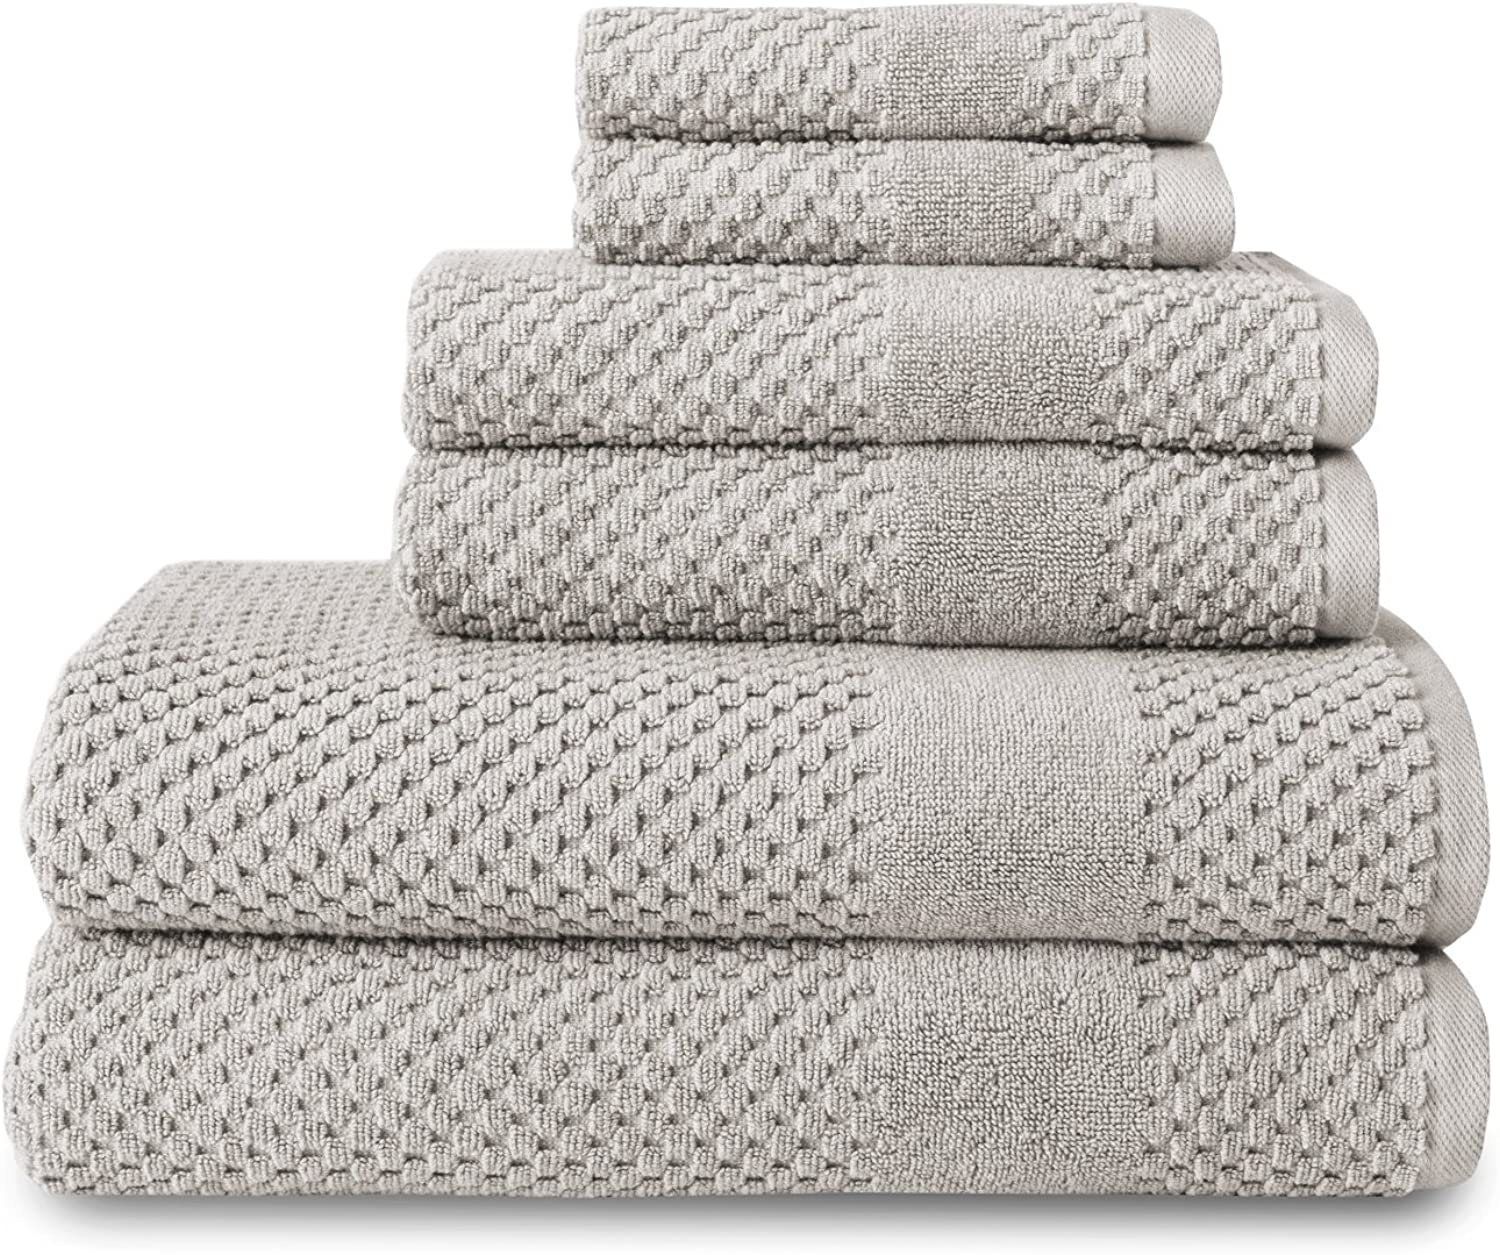 Chortex CHHC6SET-SI 6 Piece Honeycomb Towel Set, Silver